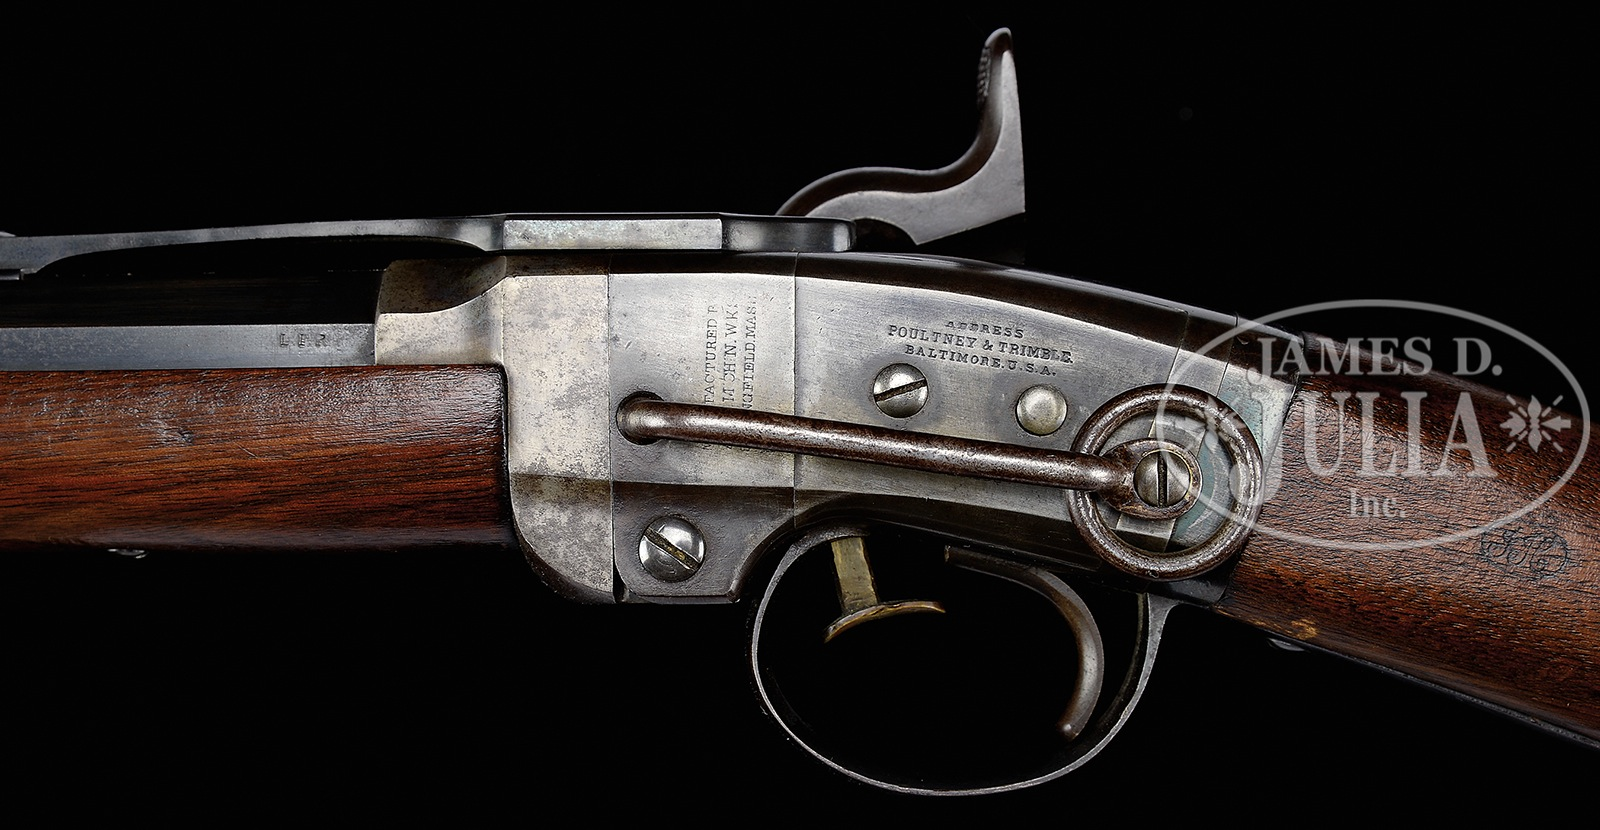 EXTREMELY FINE CIVIL WAR SMITH CARBINE WITH A NAVY